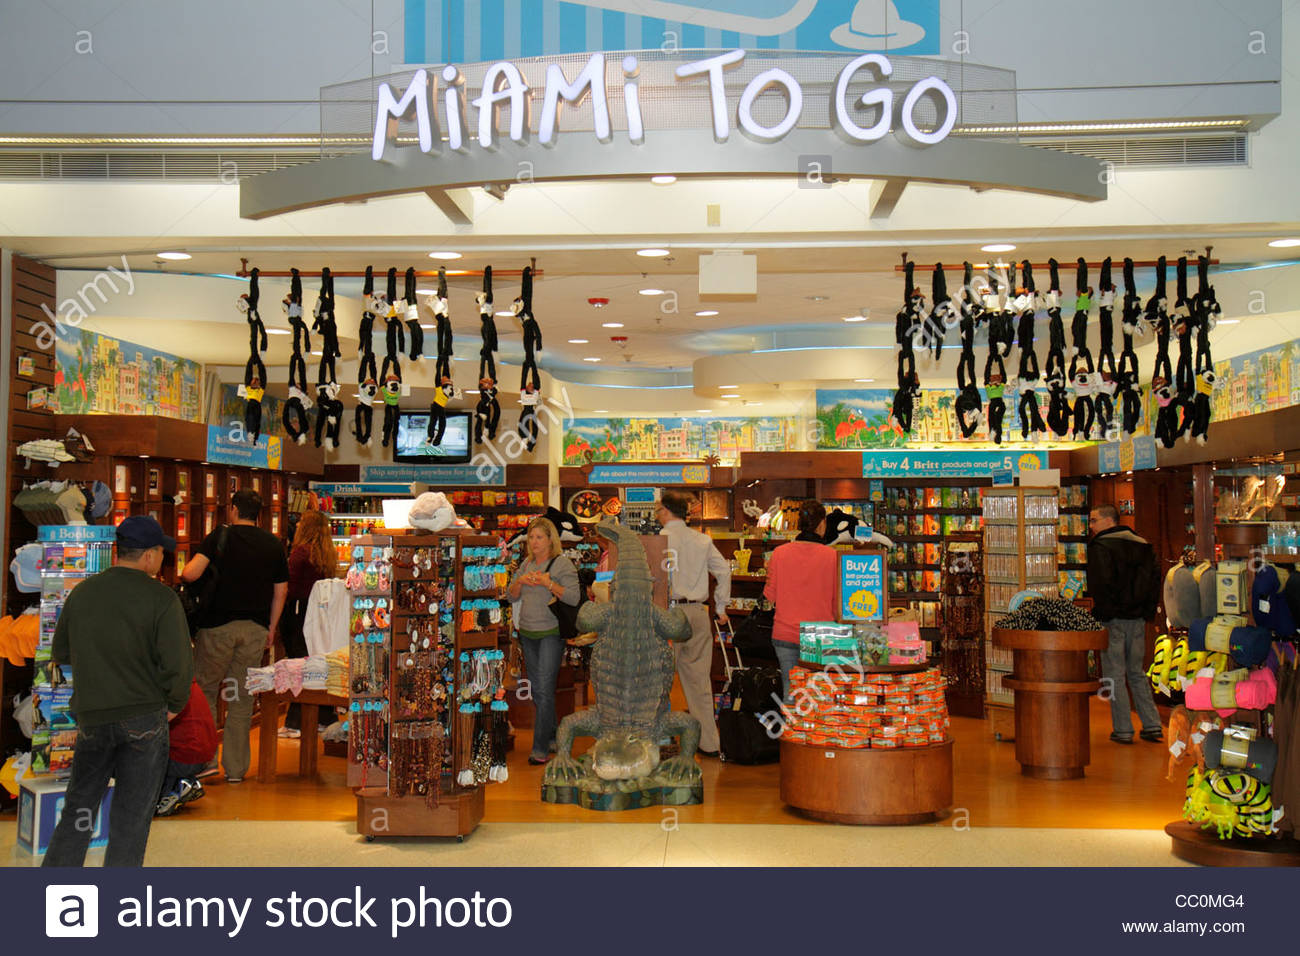 Miami International Mall is a premiere family-friendly international shopping experience located in Doral, providing a gathering place for consumers to shop, dine and .